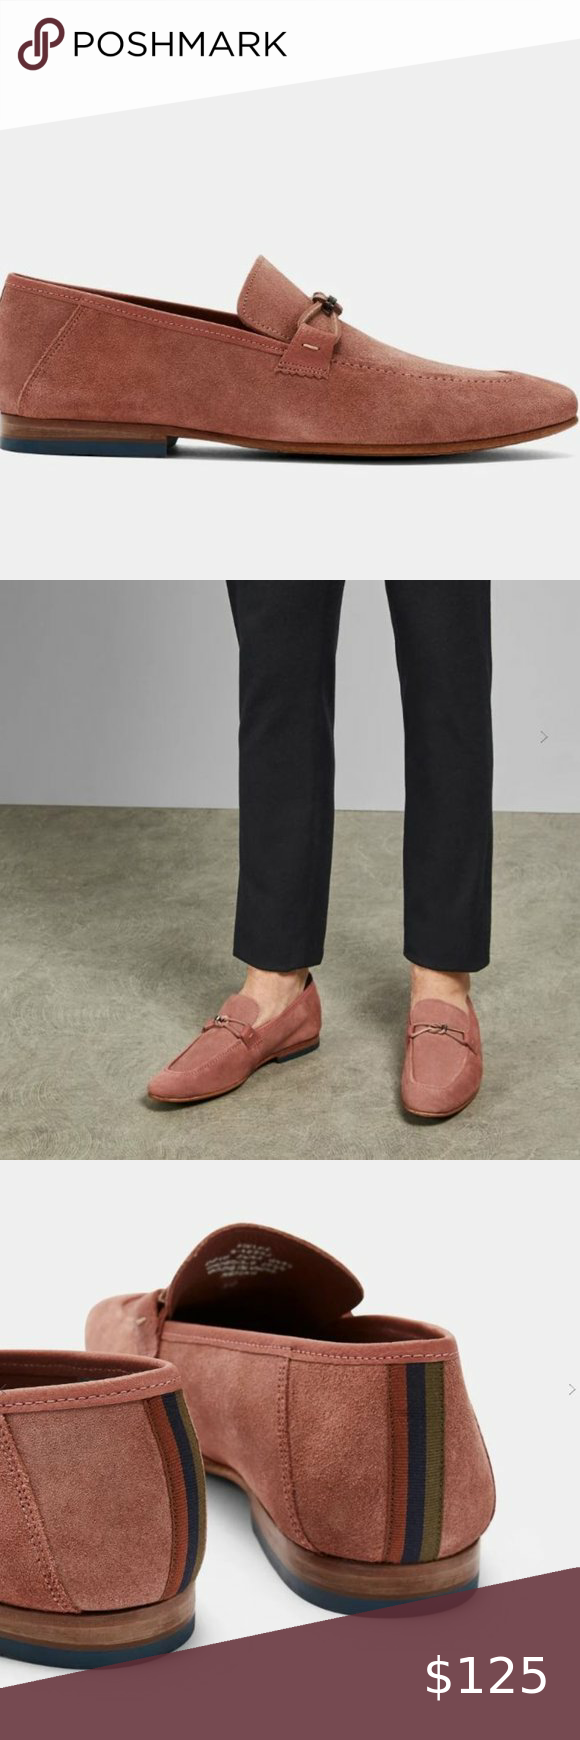 Ted Baker Siblac Loafers - Deep Pink 9